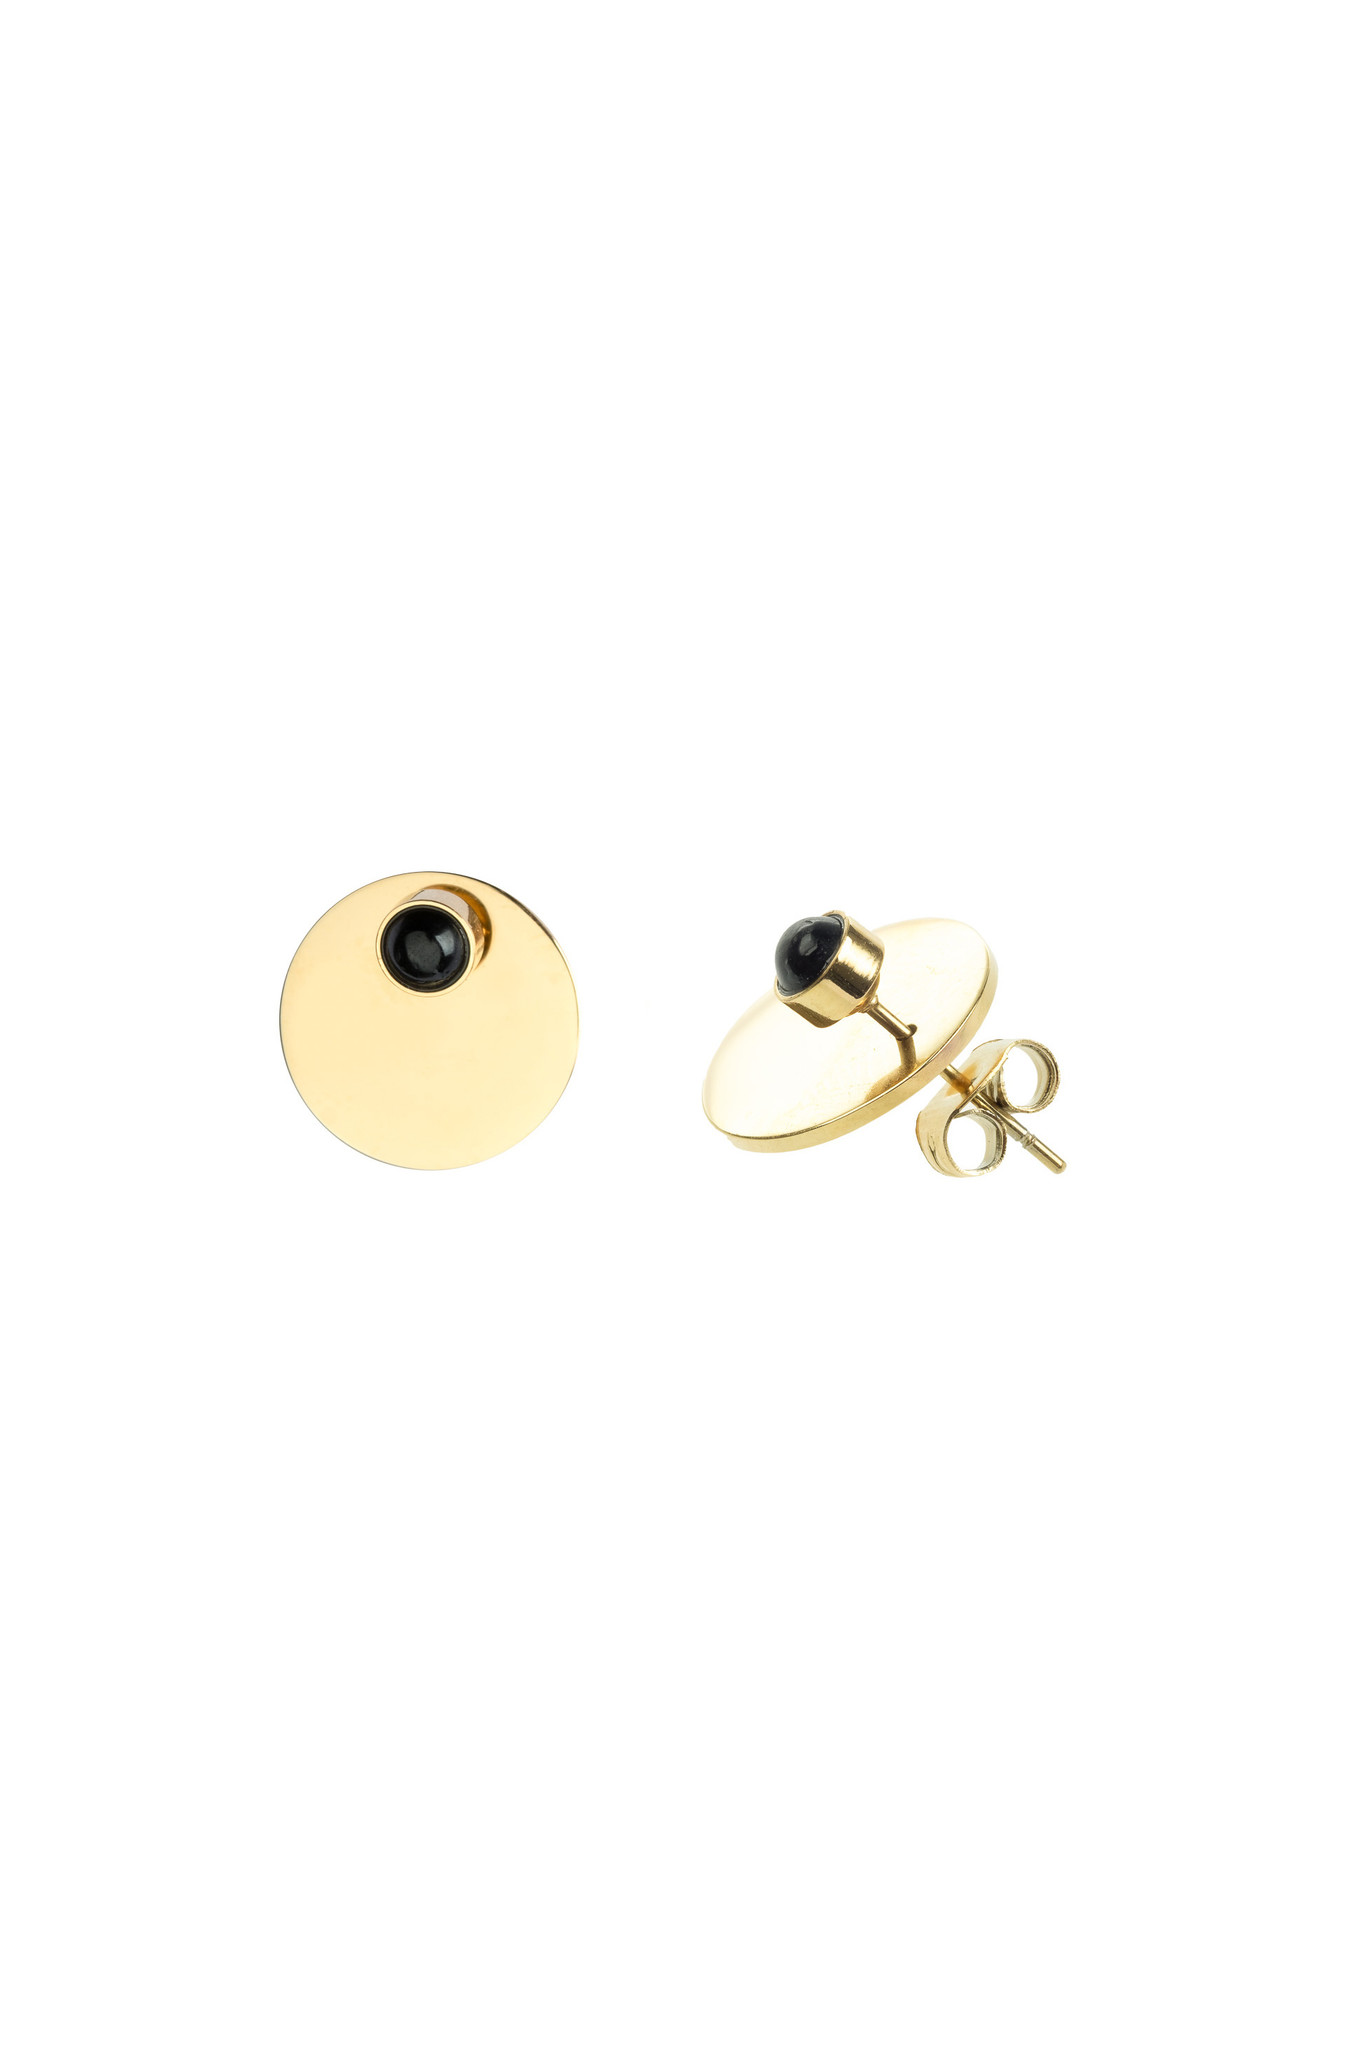 Energy Muse Double Earrings - Gold with Black Onyx-1